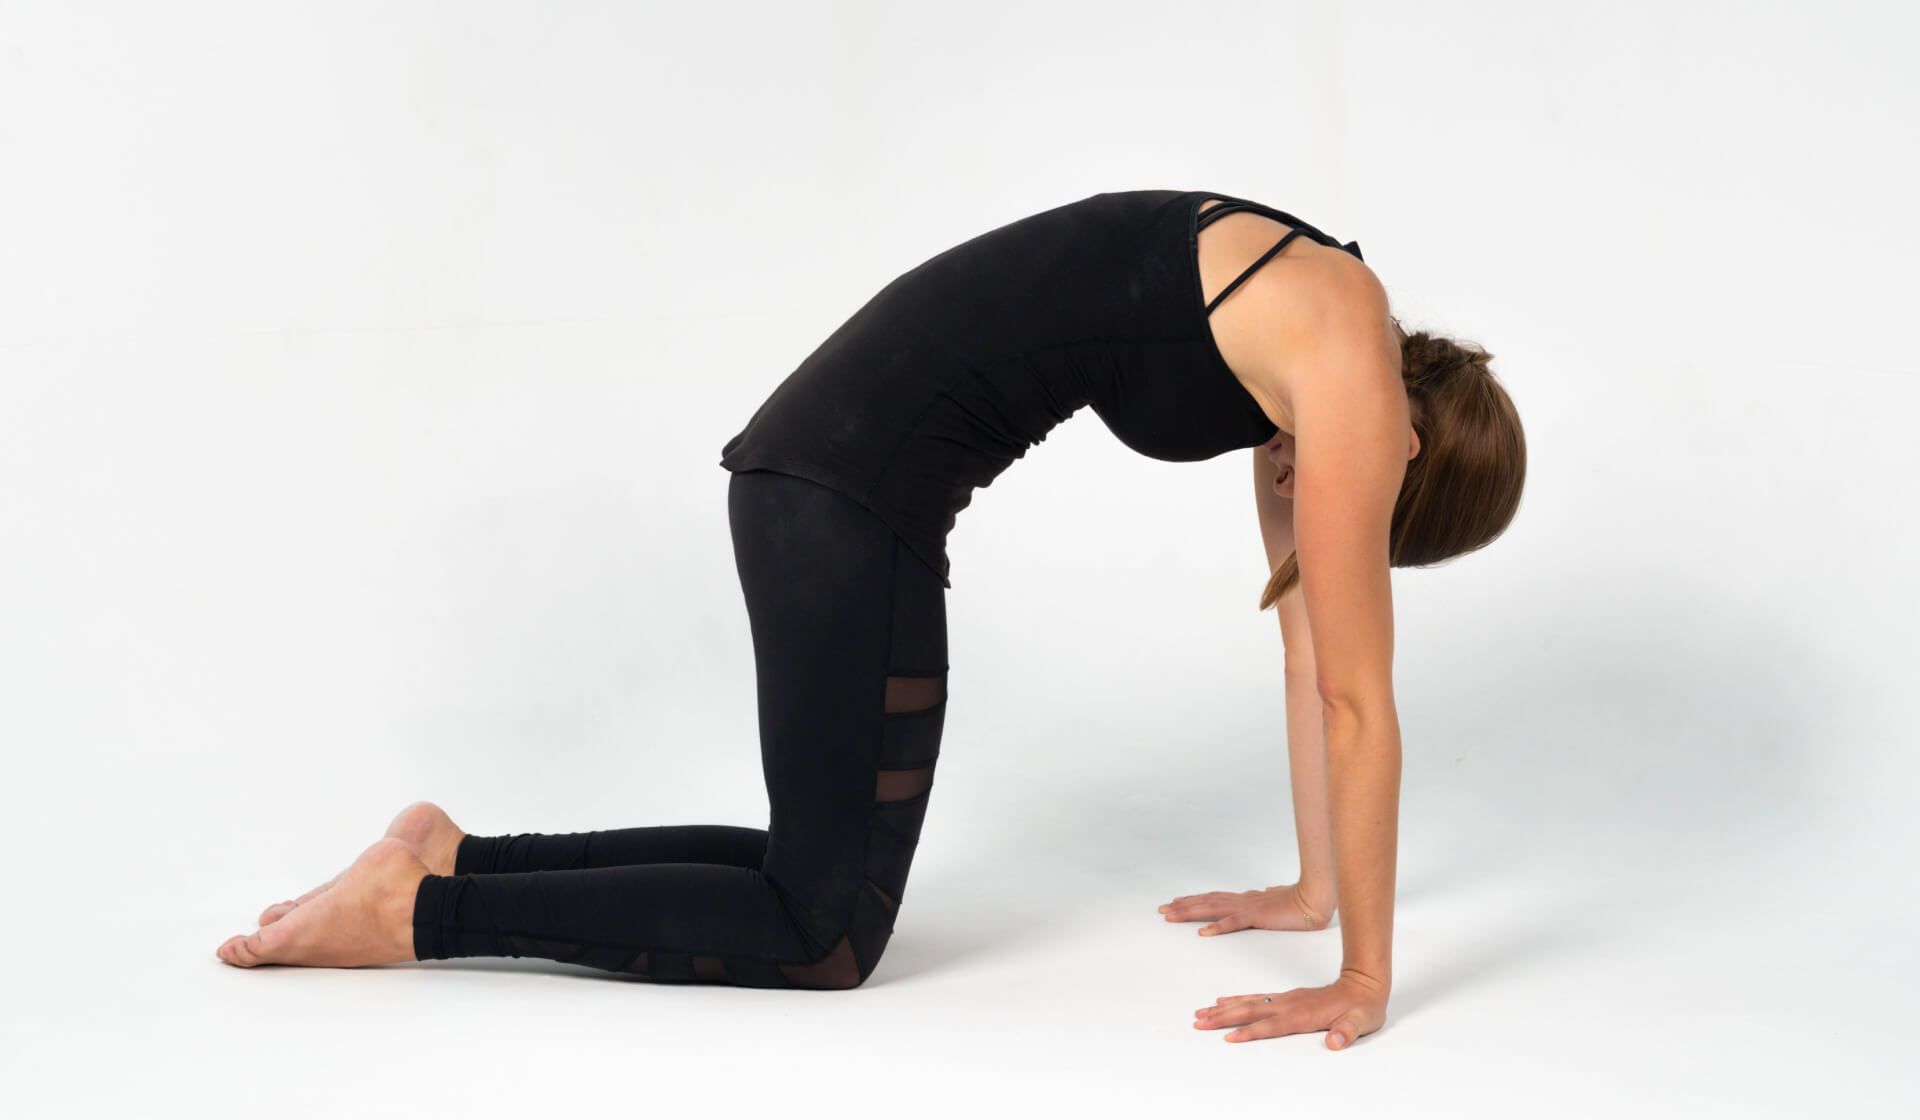 Woman yoga teacher dressed in all black practicing a yoga pose on all fours (cat pose) against a white backdrop